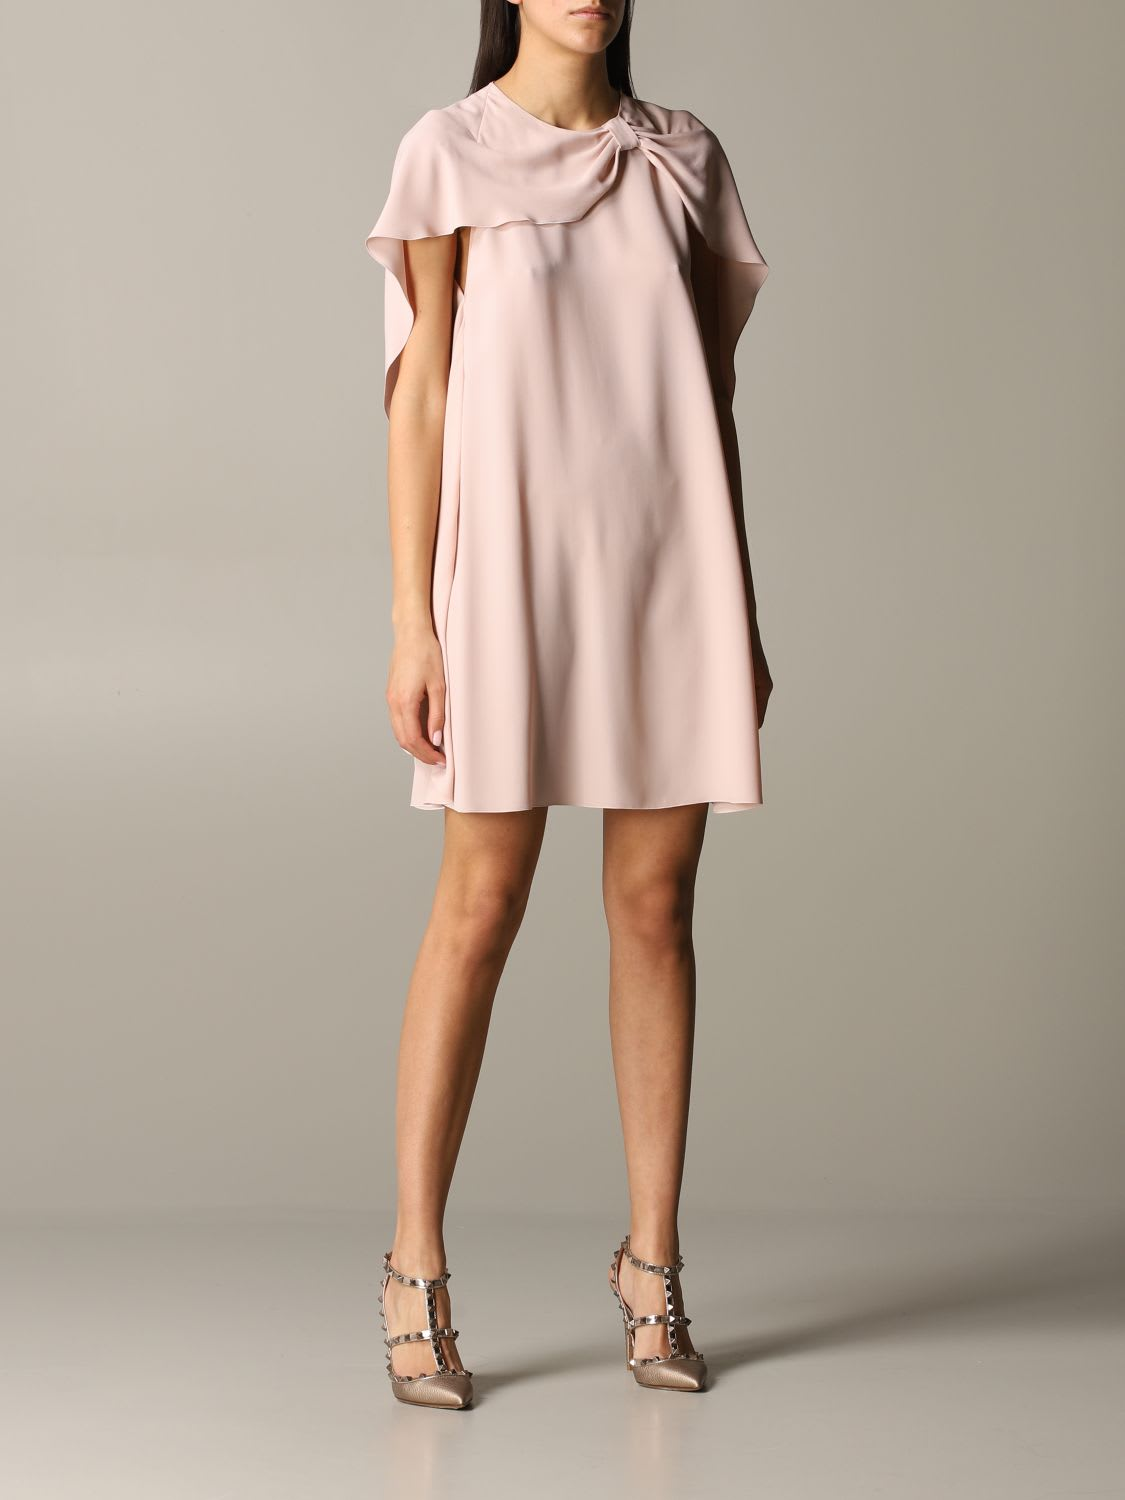 Buy Red Valentino Dress Red Valentino Silk Dress With Cape Sleeves online, shop RED Valentino with free shipping